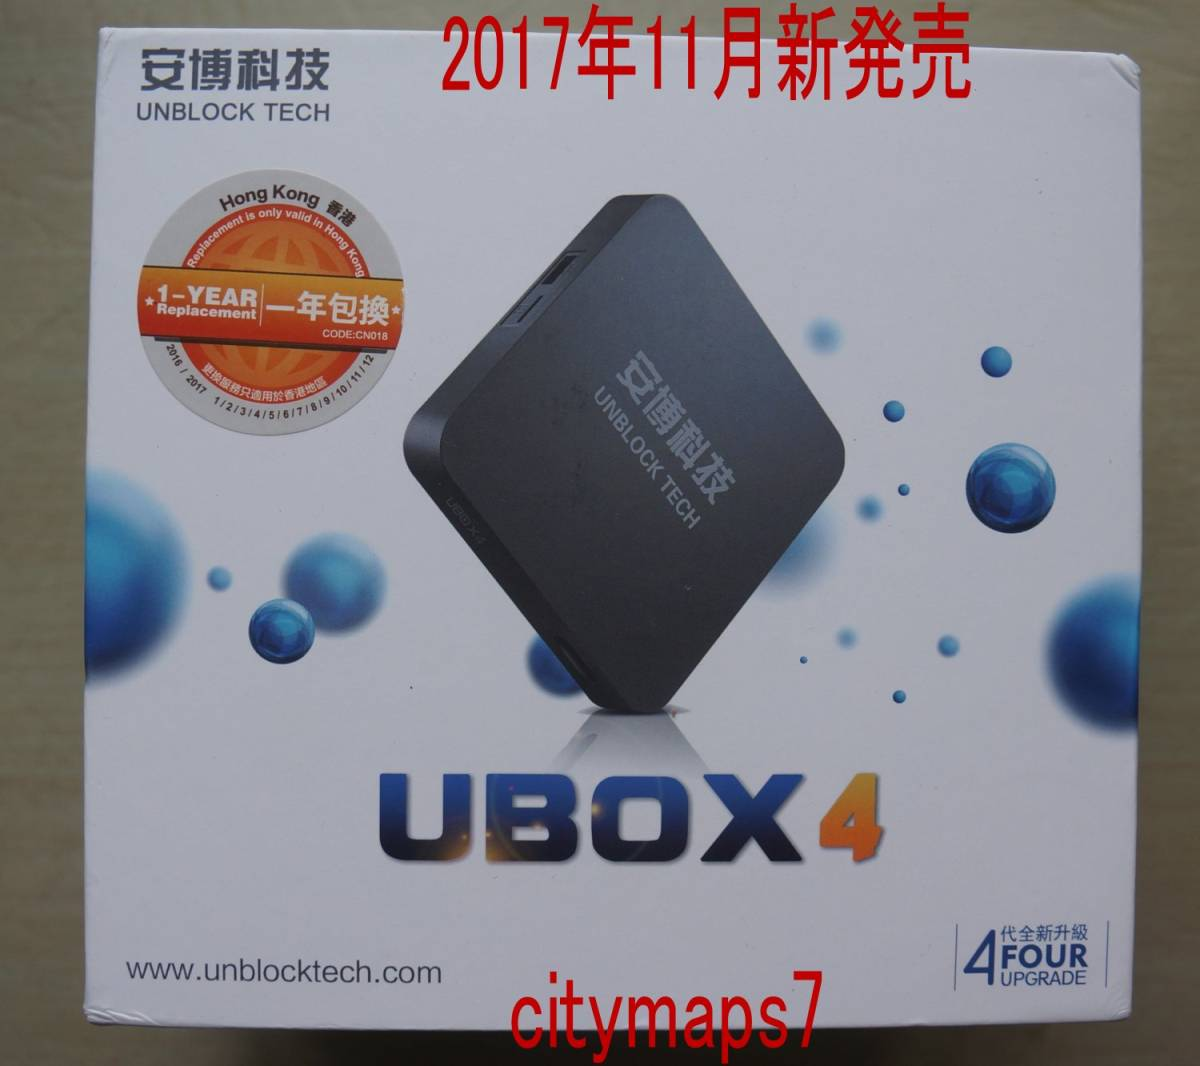 new product 2017 year 11 month UBOX 4( black )* WiFi tv tuner! Japan on intel maps russia, youtube russia, google maps russia, bing maps russia, sightseeing russia,